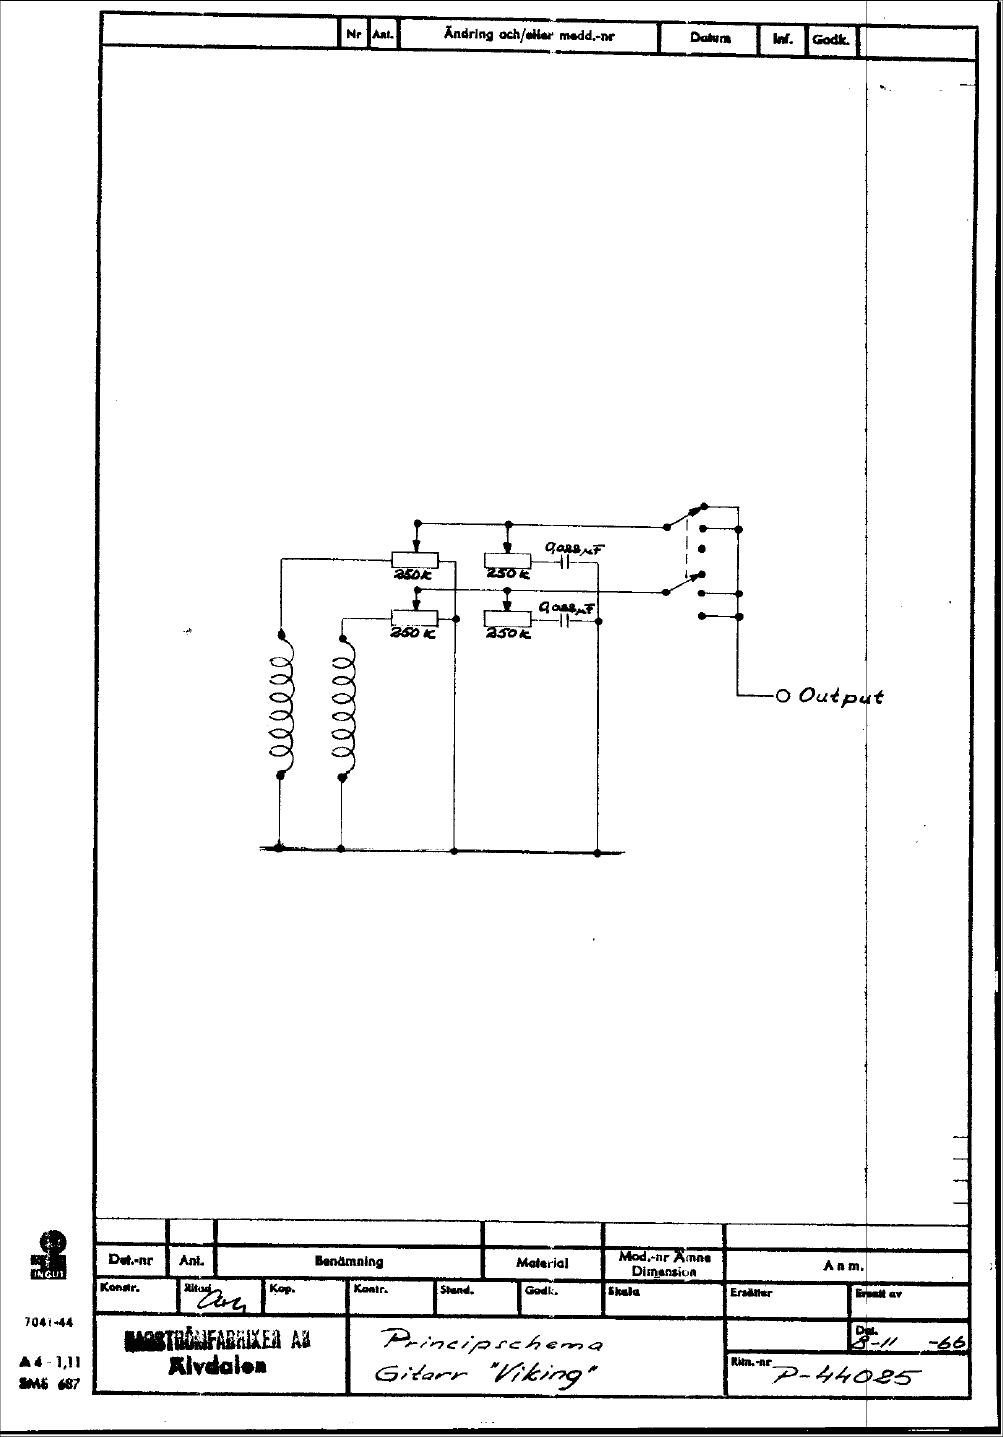 hagstrom swede wiring diagram single phase submersible motor starter explanation schematics viking 1966 era